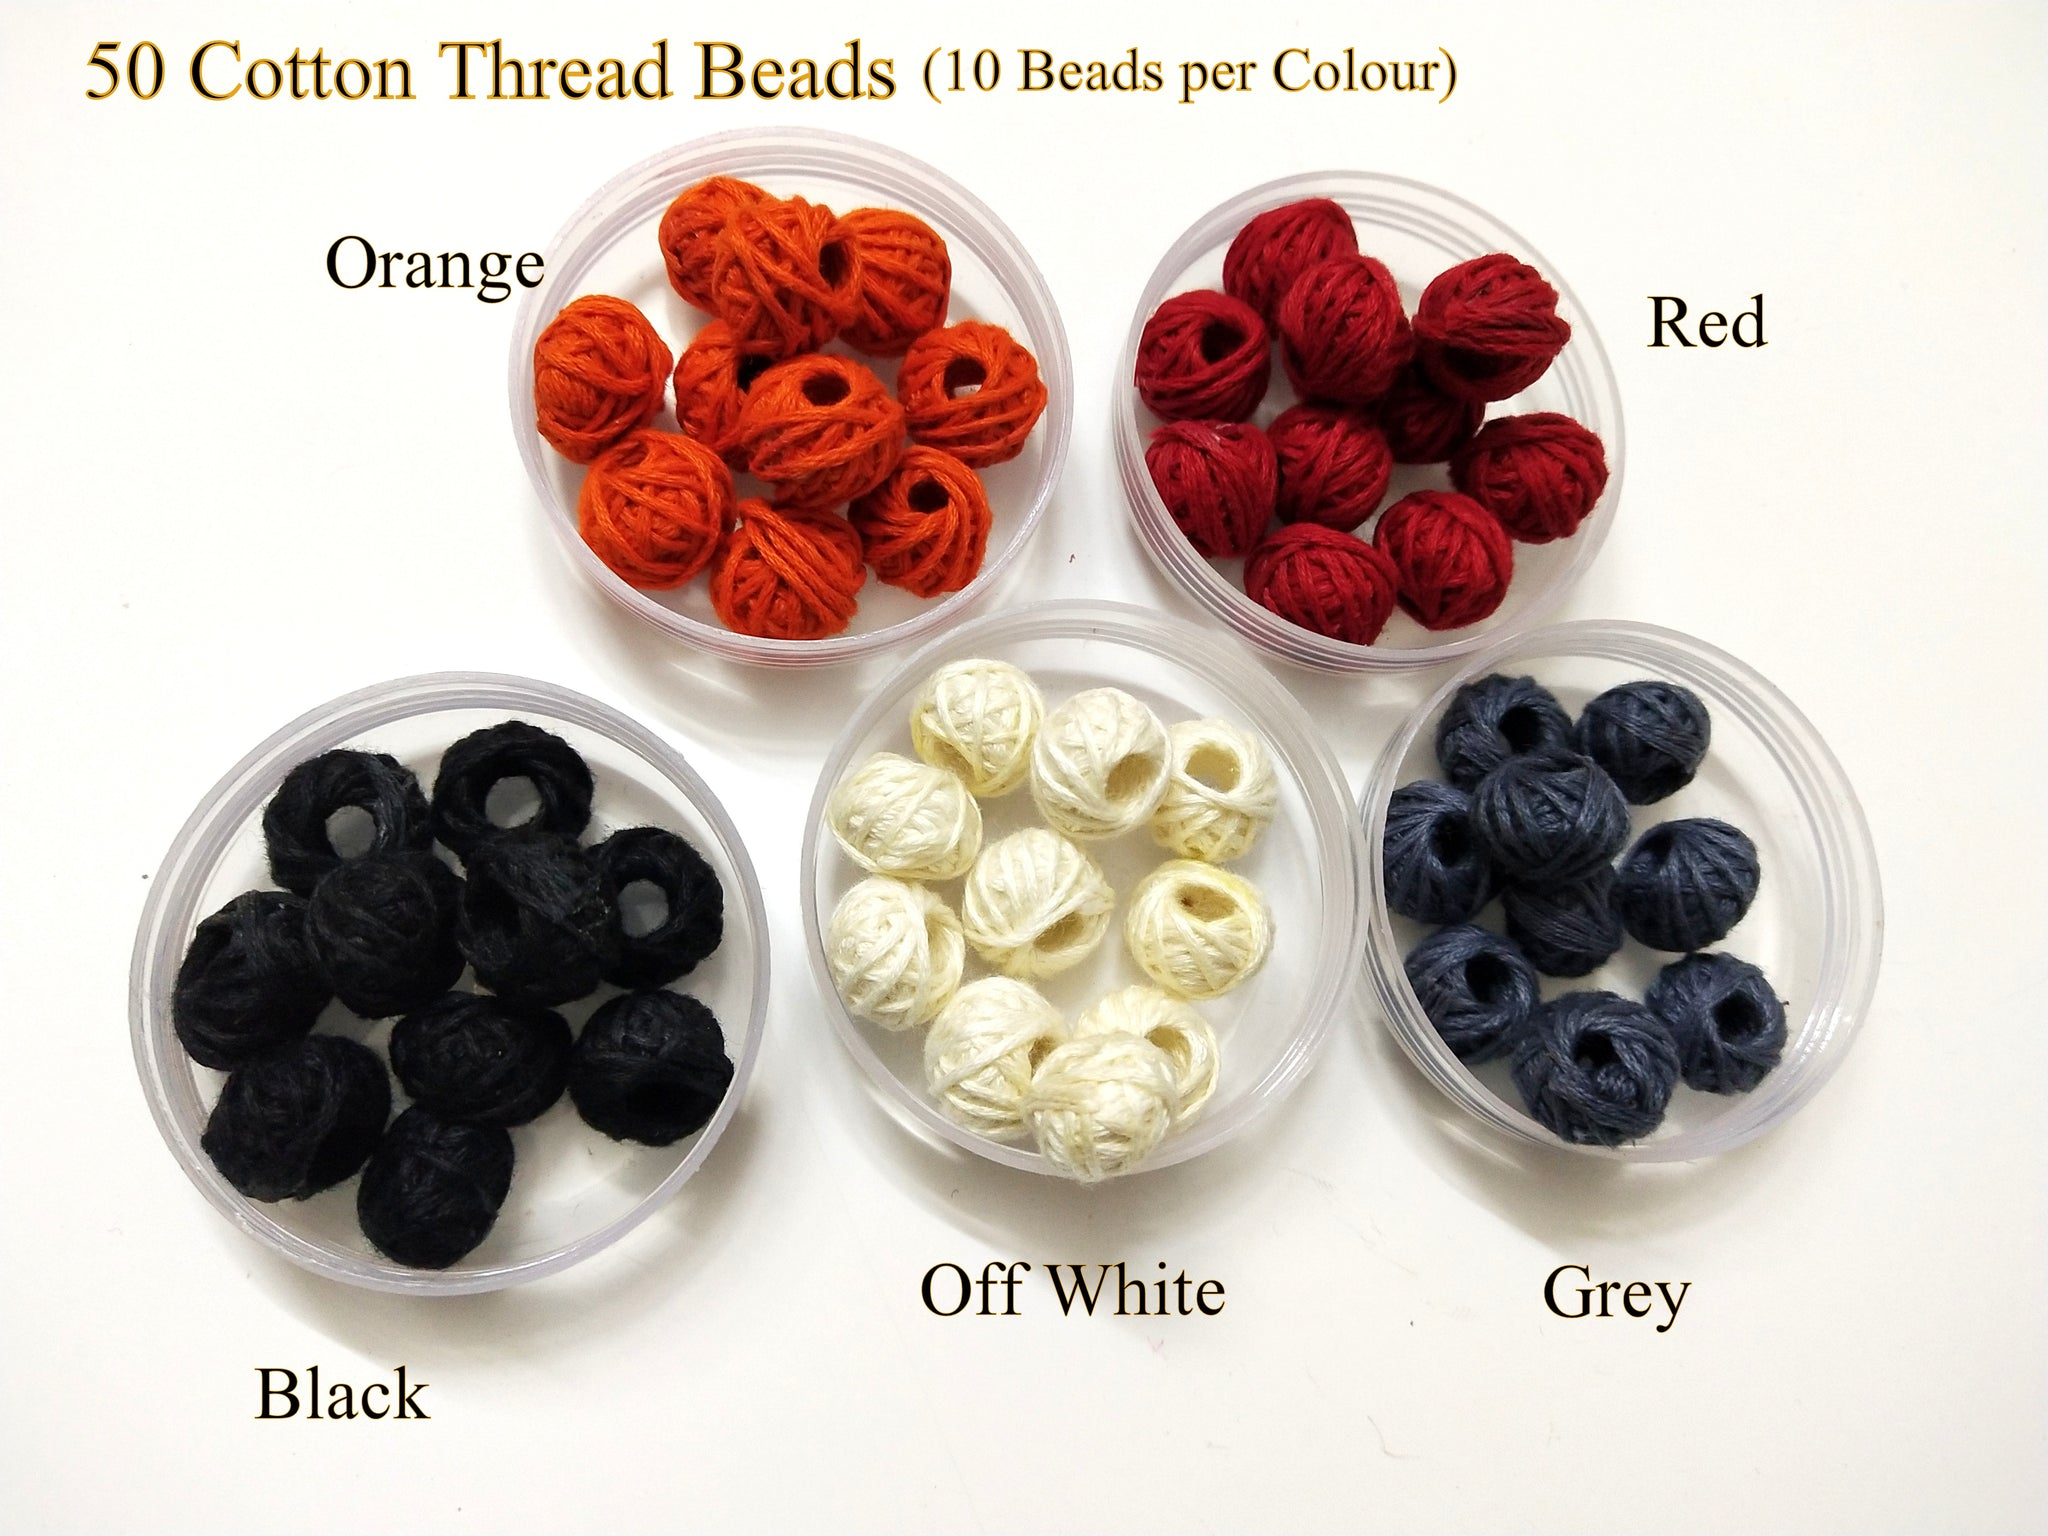 Cotton thread wrapped beads